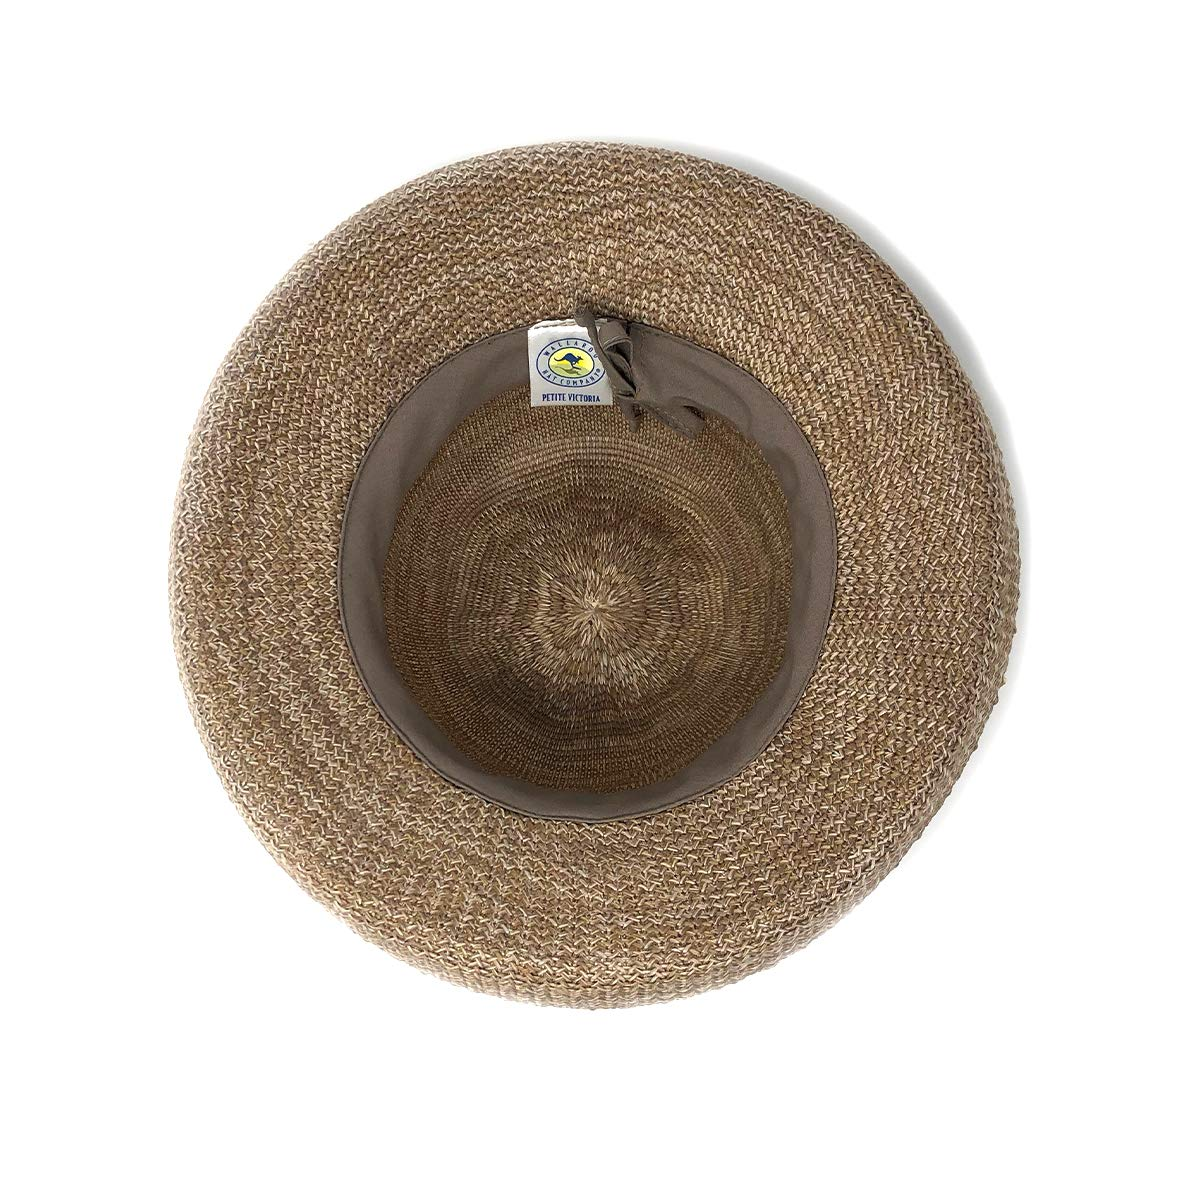 Wallaroo Hat Company Women's Petite Victoria Sun Hat - Mixed Camel - Packable, Modern Style, Petite Size, Designed in Australia. by Wallaroo Hat Company (Image #4)